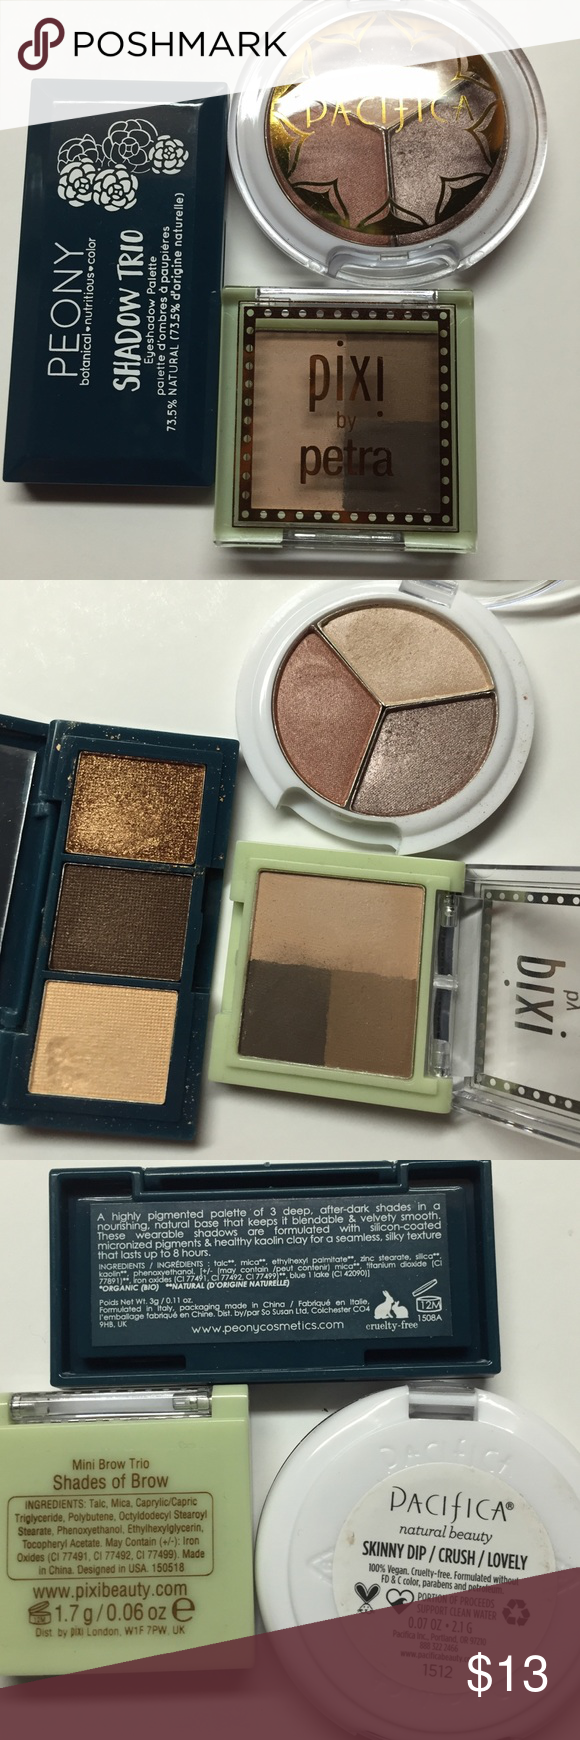 6 Natural Nude Eyeshadow 3 Brow Swatched Clean My Posh Picks Pixy Eyebrow Brown Pacifica Skinny Dip Crush Lovely